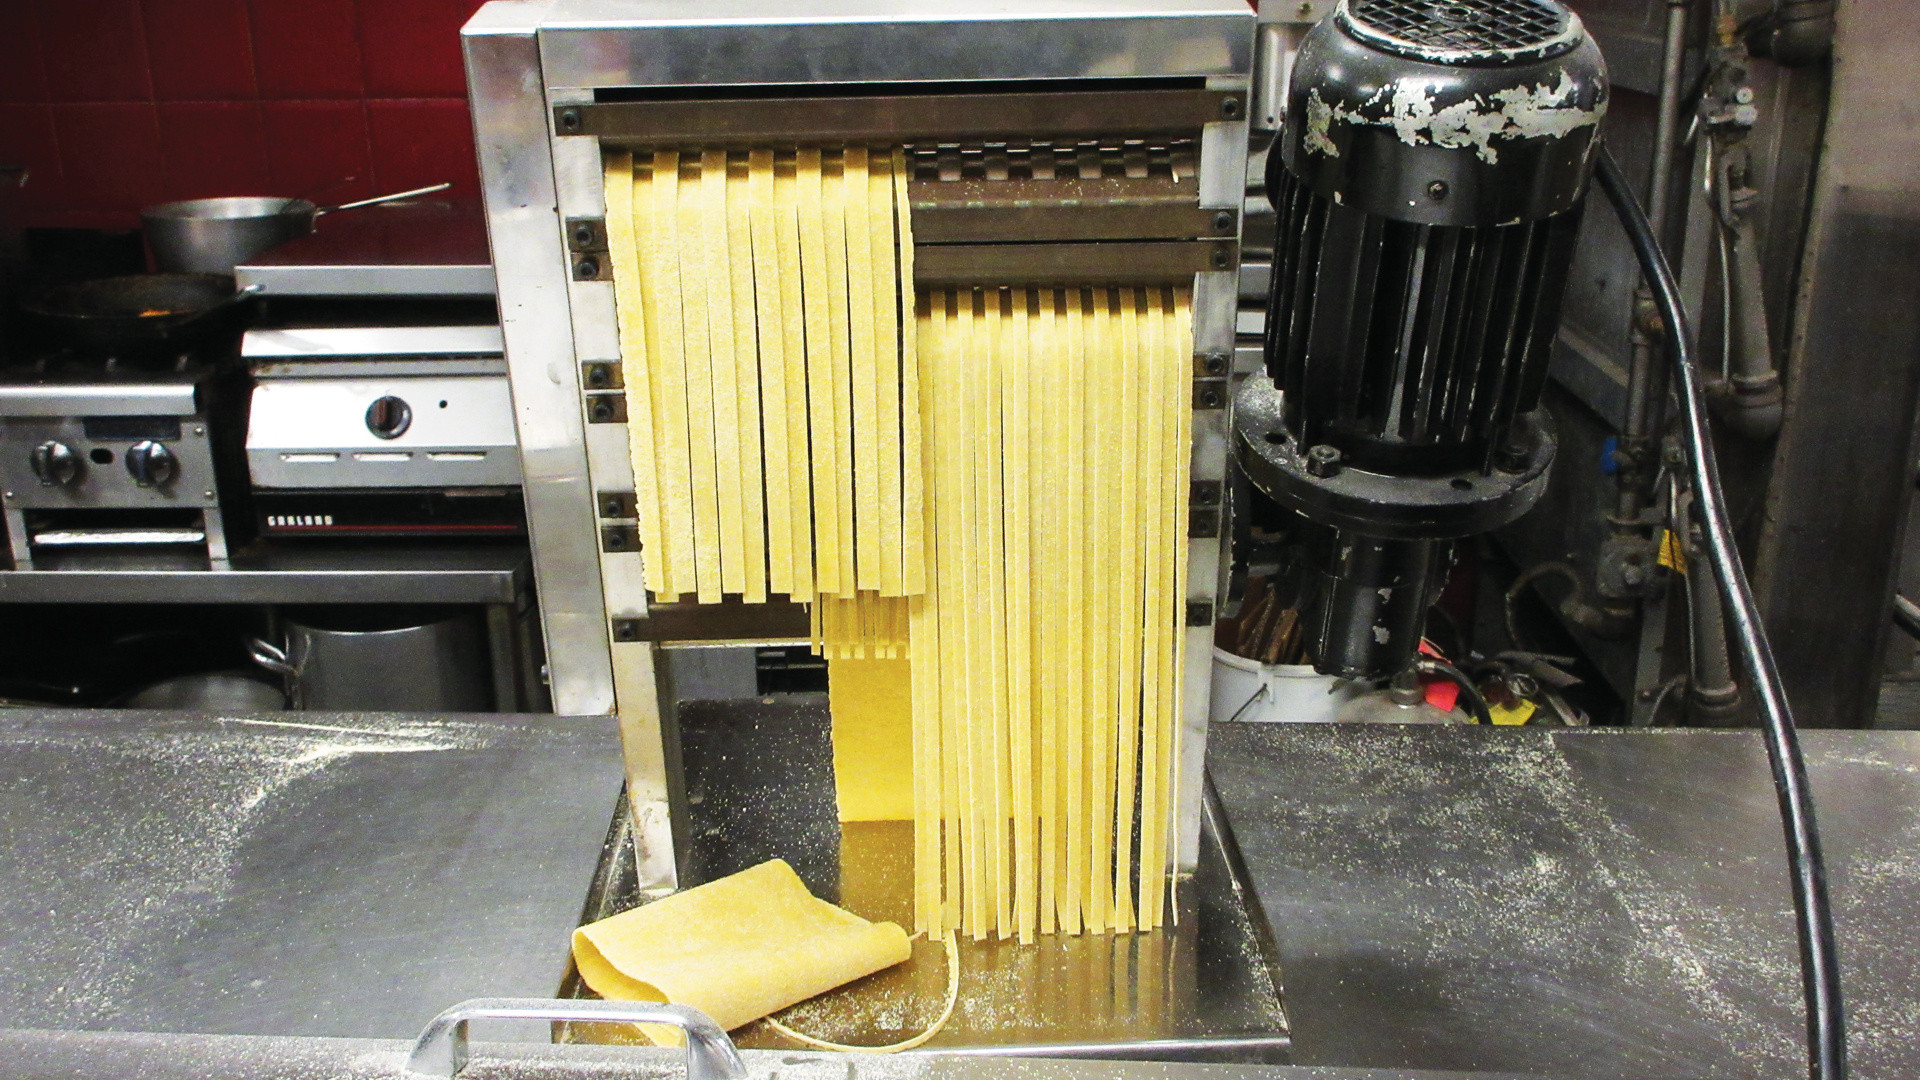 Local businesses in Toronto | A pasta maker at Pasta Pantry